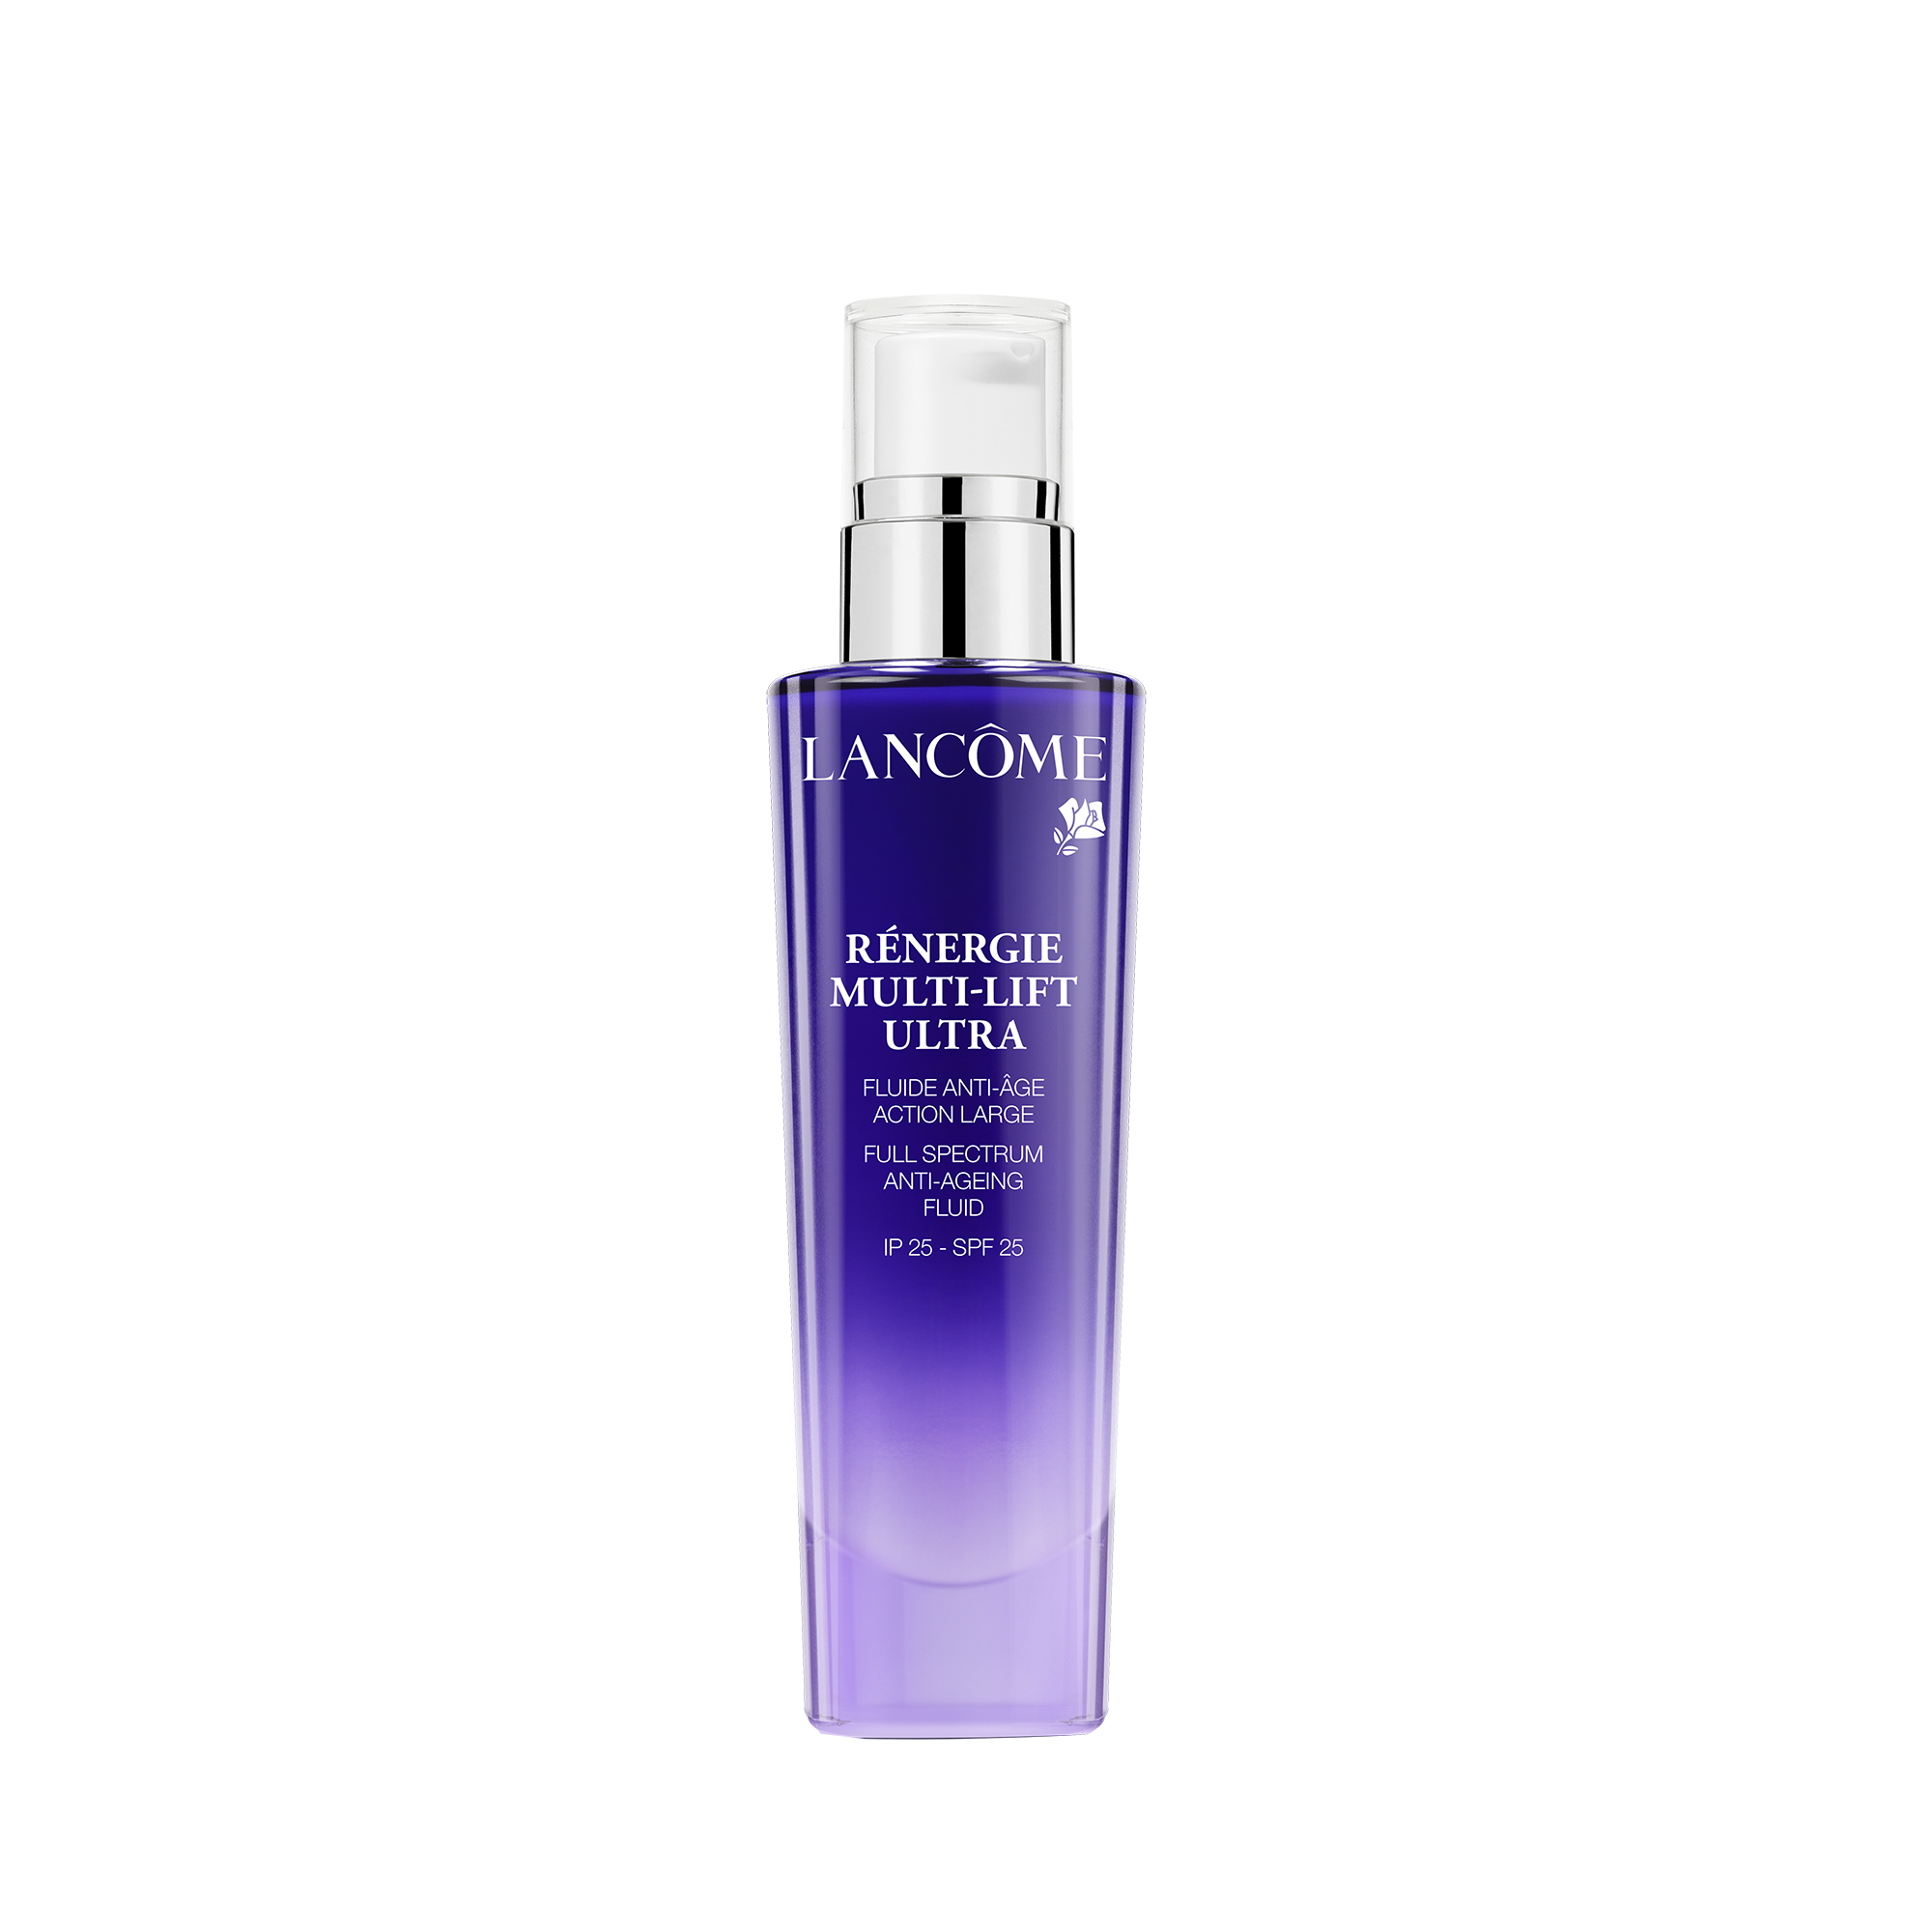 Rénergie Multi-Lift Ultra Anti-Aging Fluid 50 ml